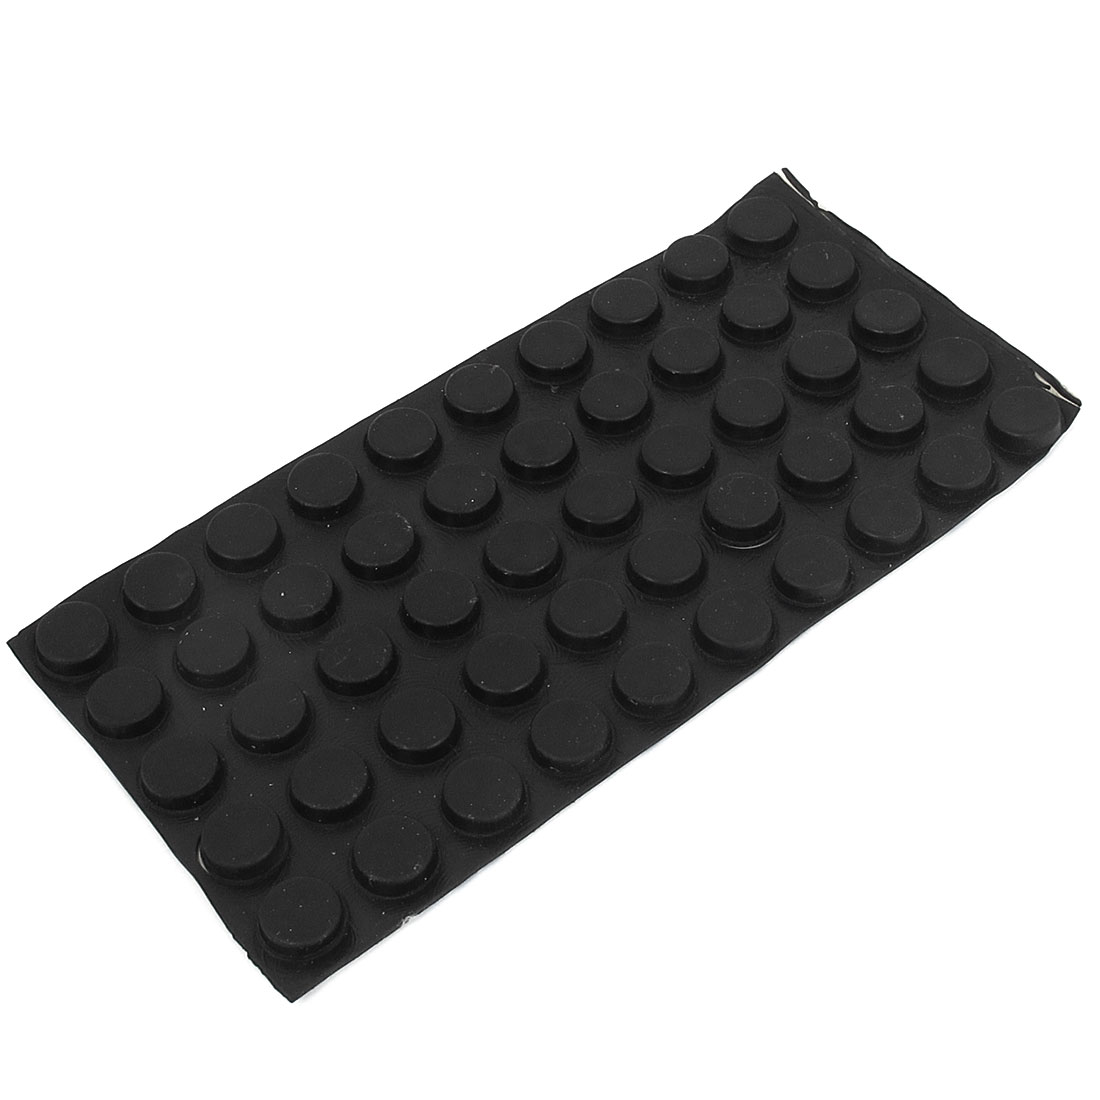 Floor Protector Anti-Skid Rubber Furniture Protection Pads Self Adhesive Sheet